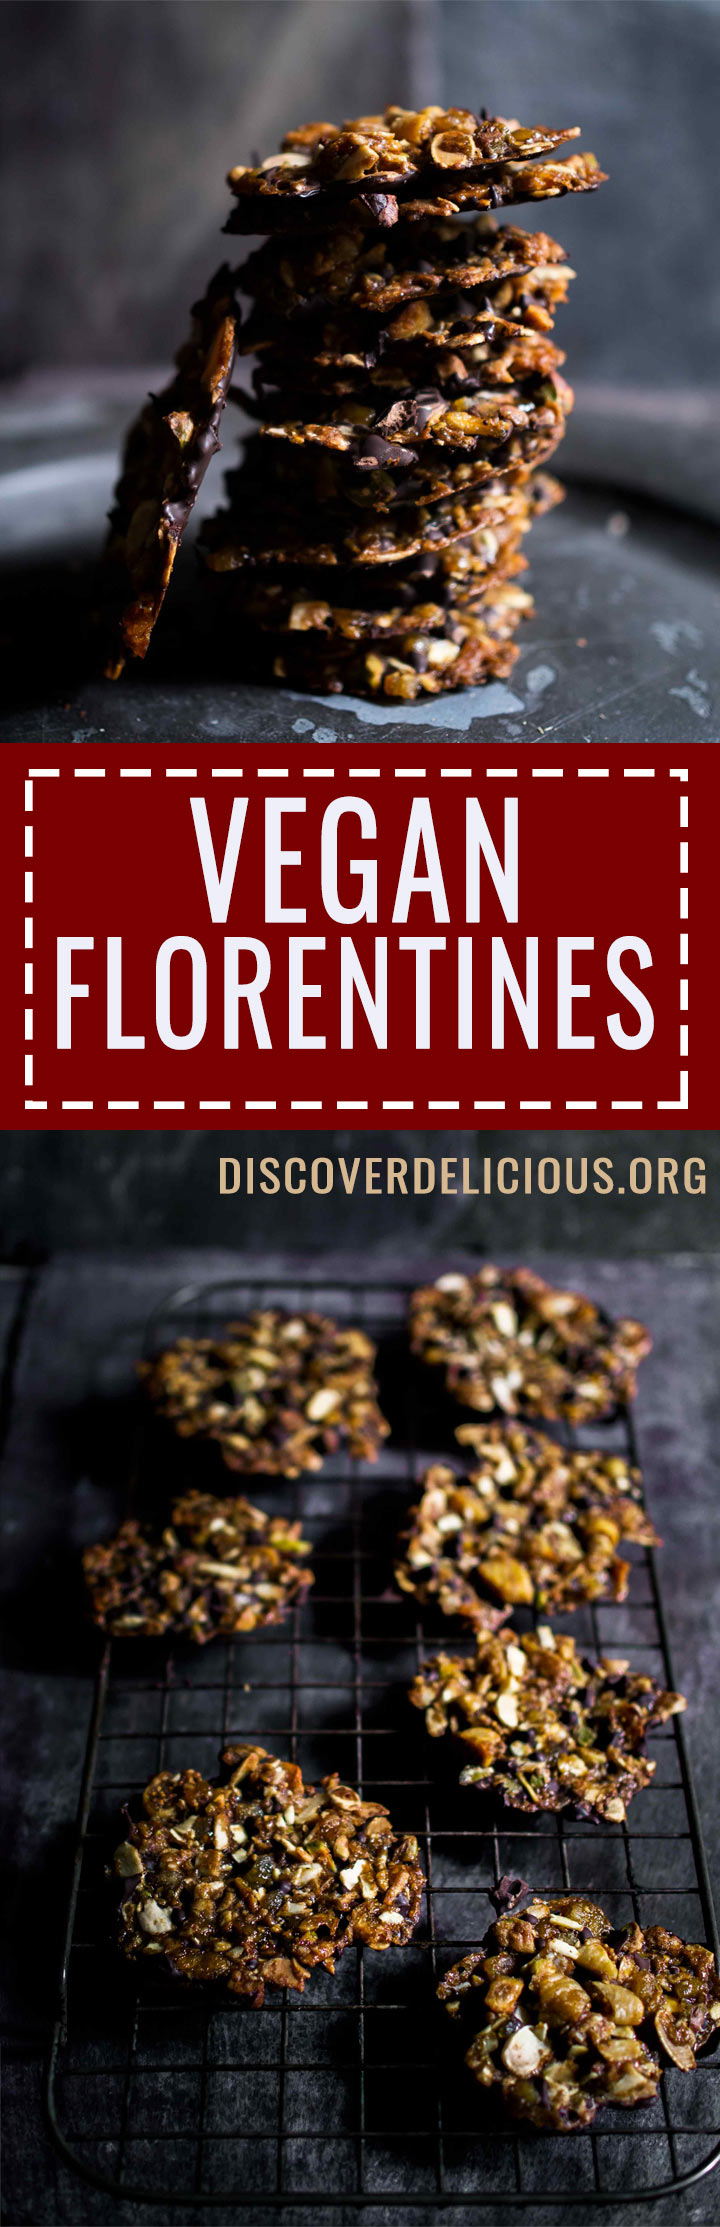 Vegan Florentines | www.discoverdelicious.org | Discover Delicious | Food Blog